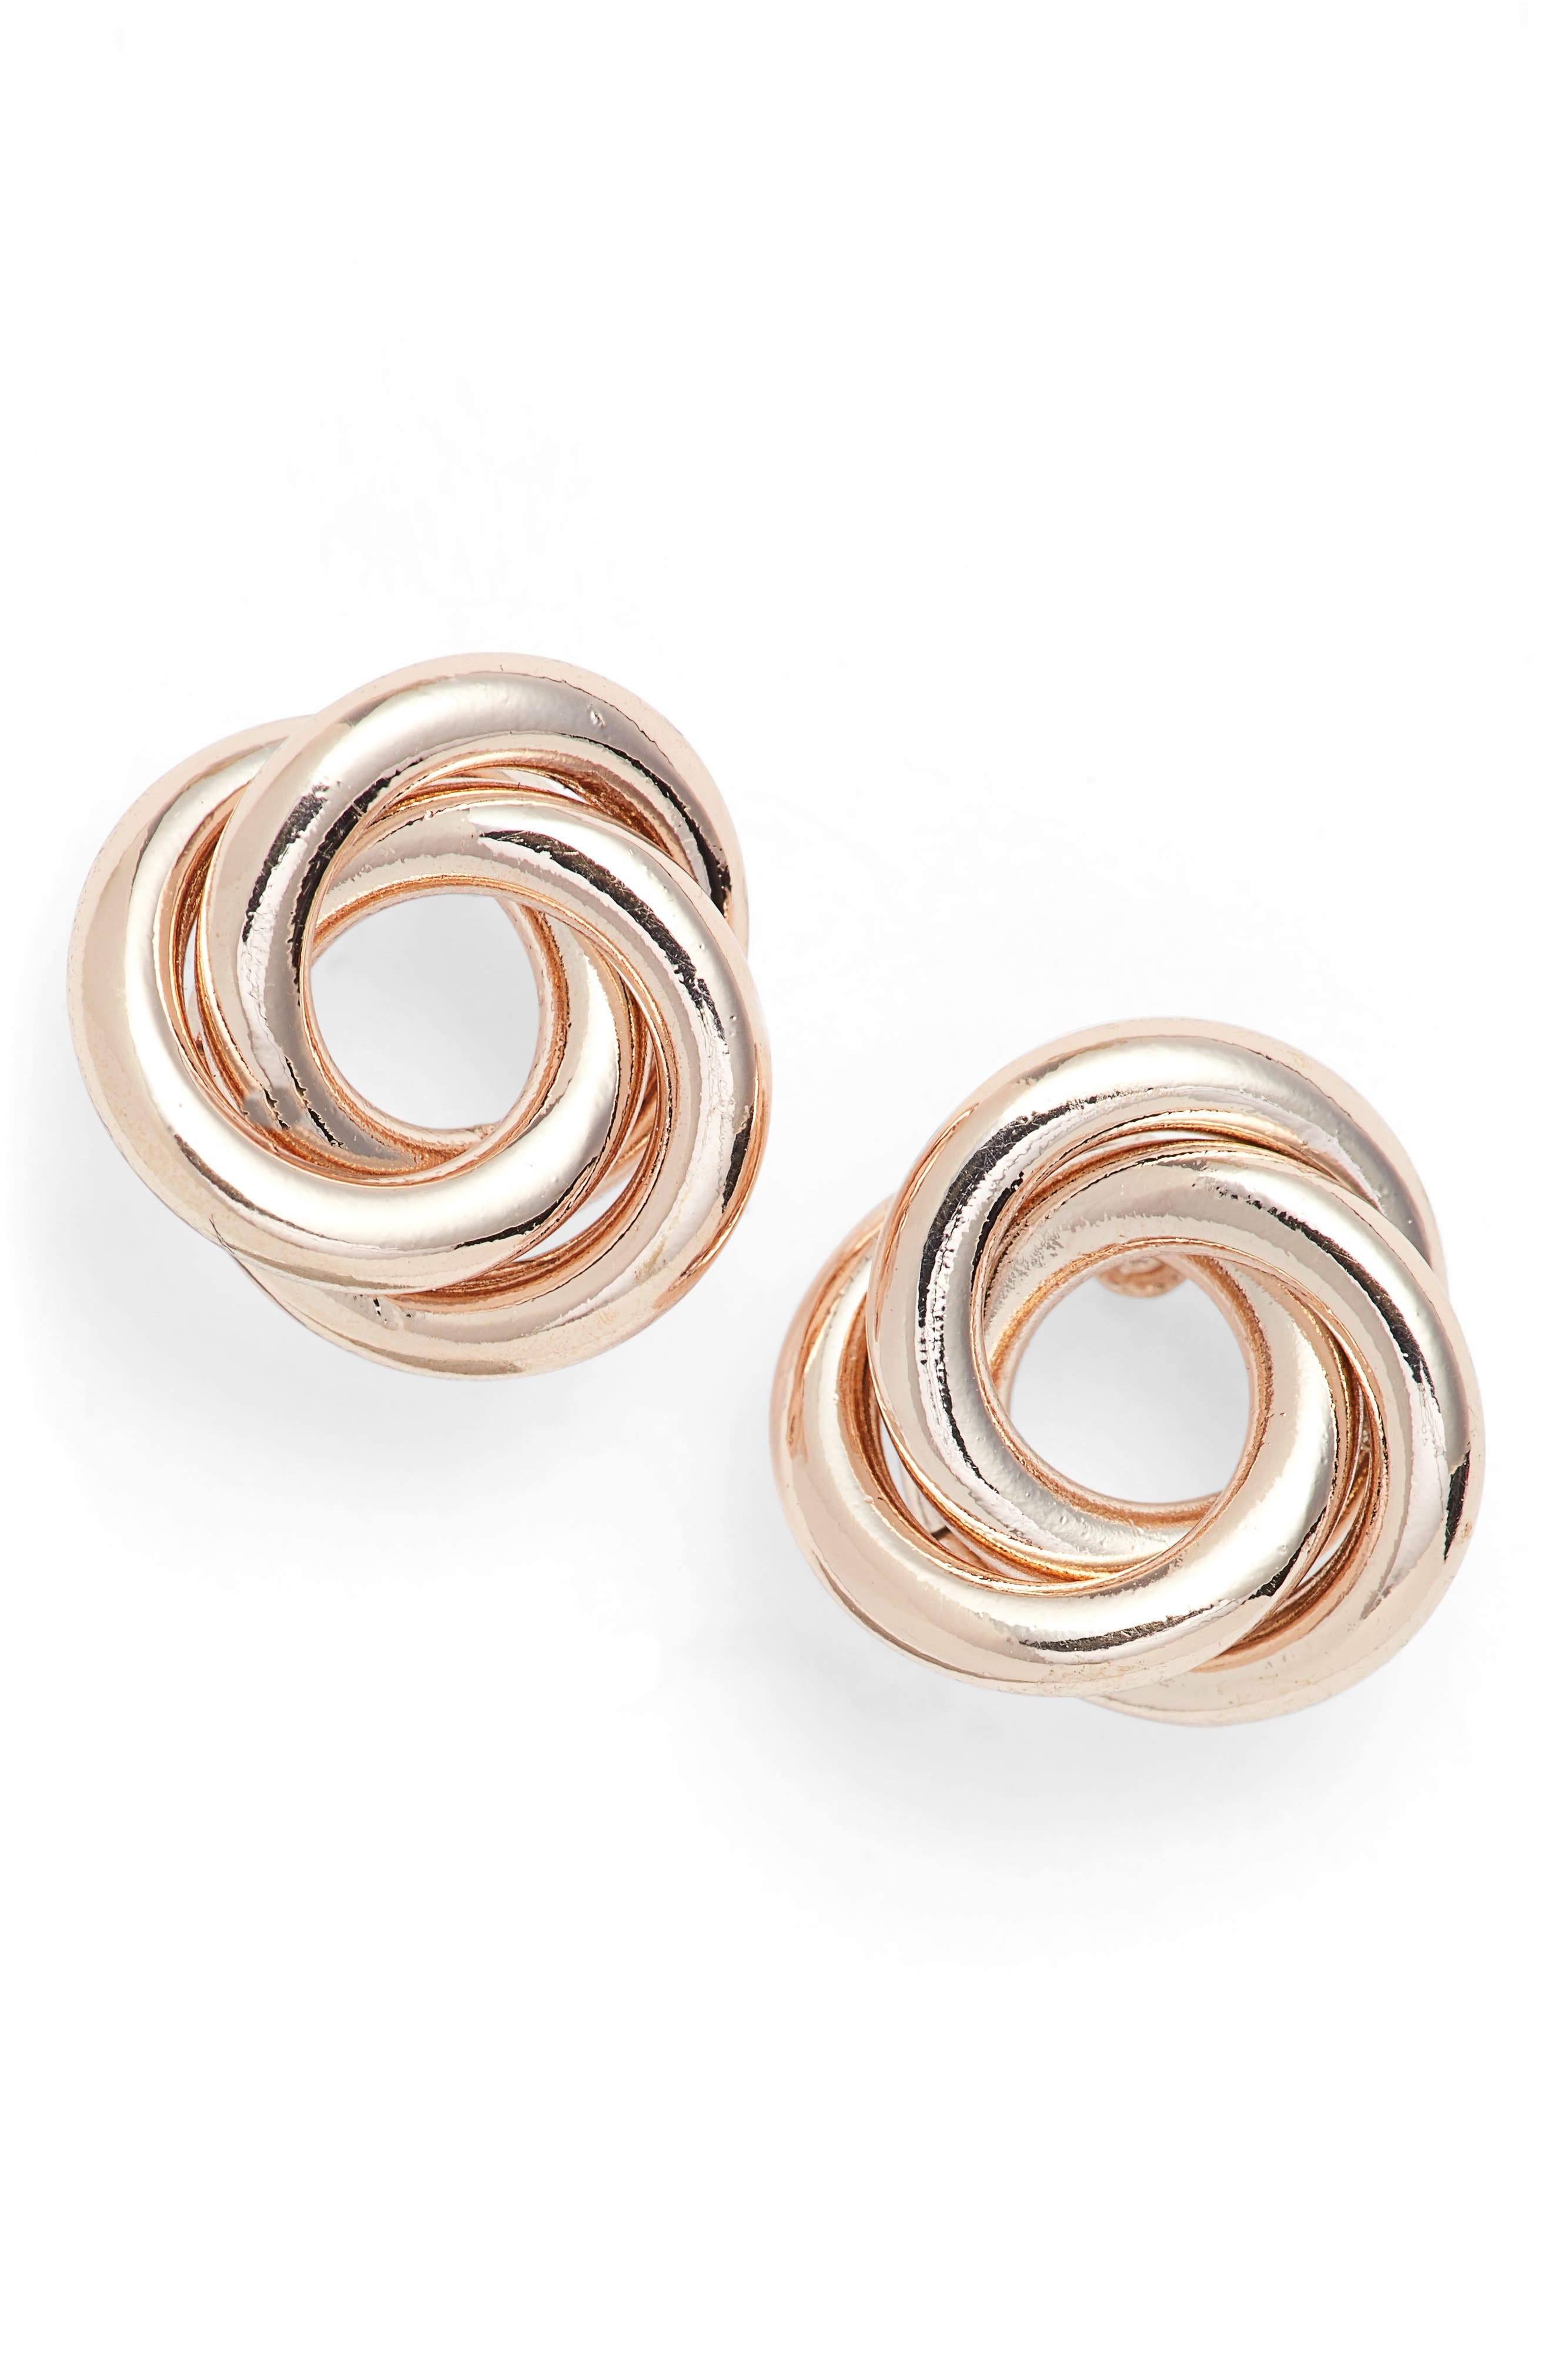 Alternate Image 1 Selected - Nordstrom Twisted Knot Stud Earrings